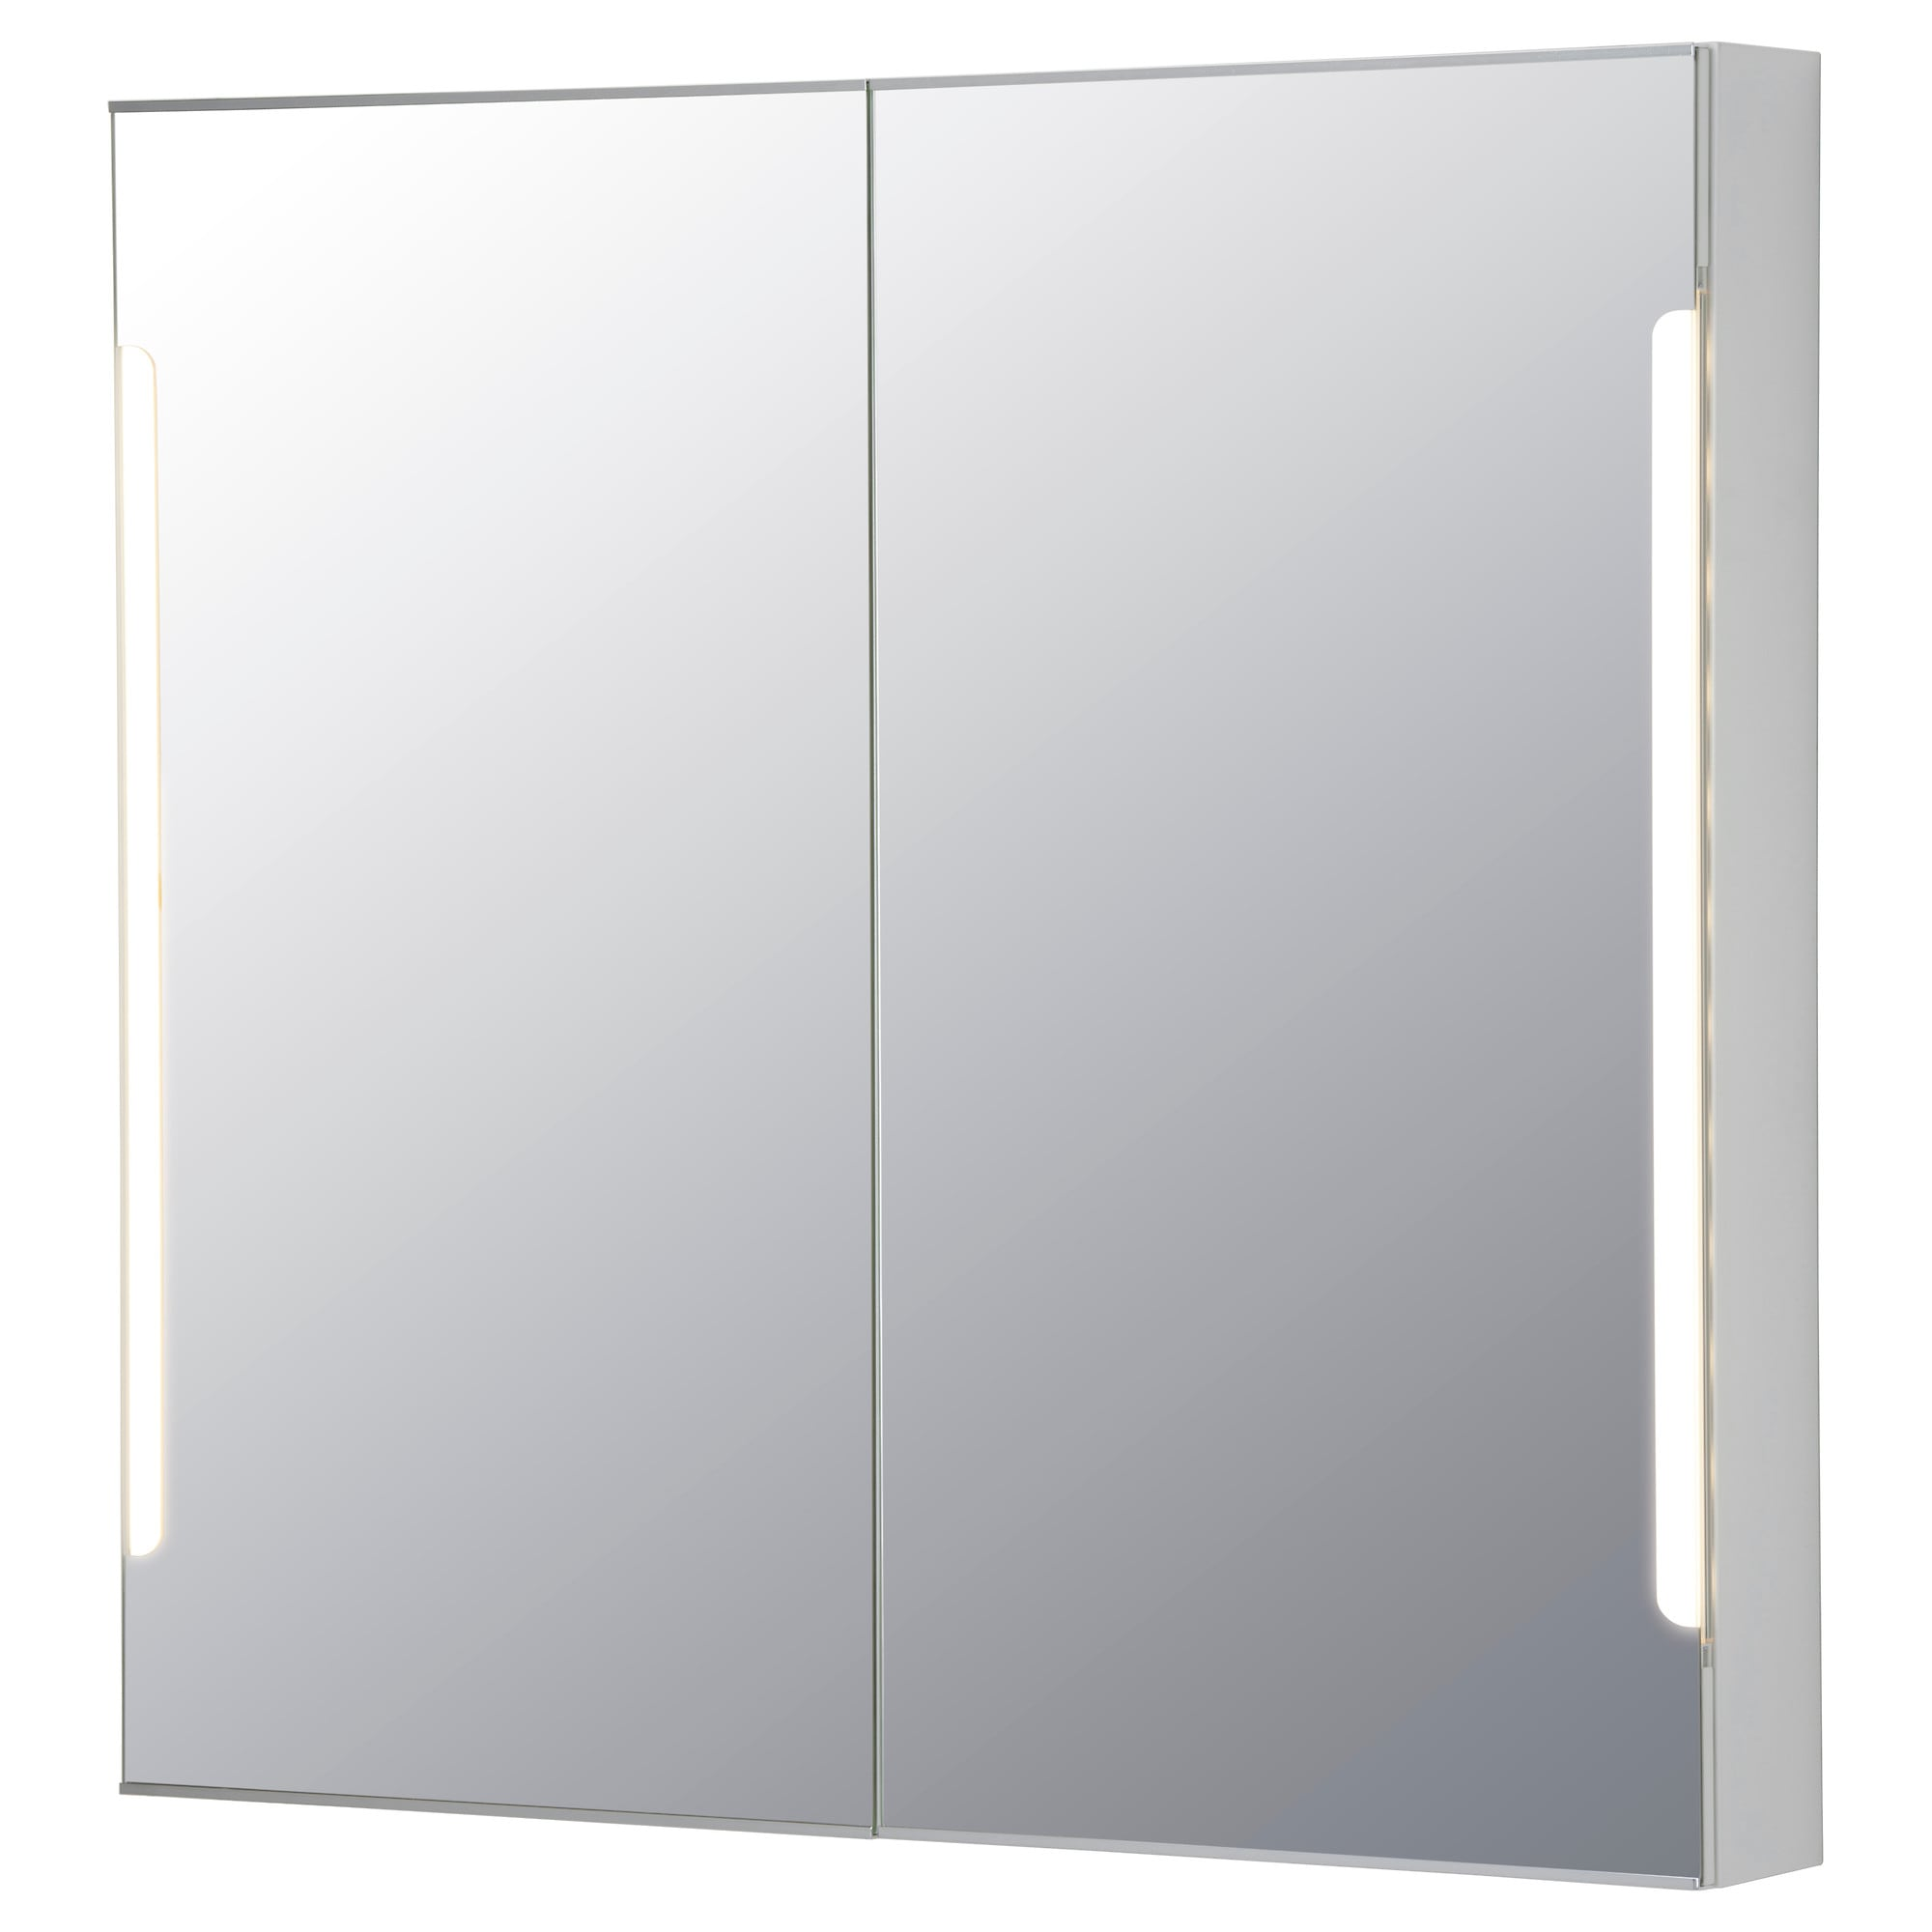 STORJORM Mirror cabinet w/2 doors & light - IKEA